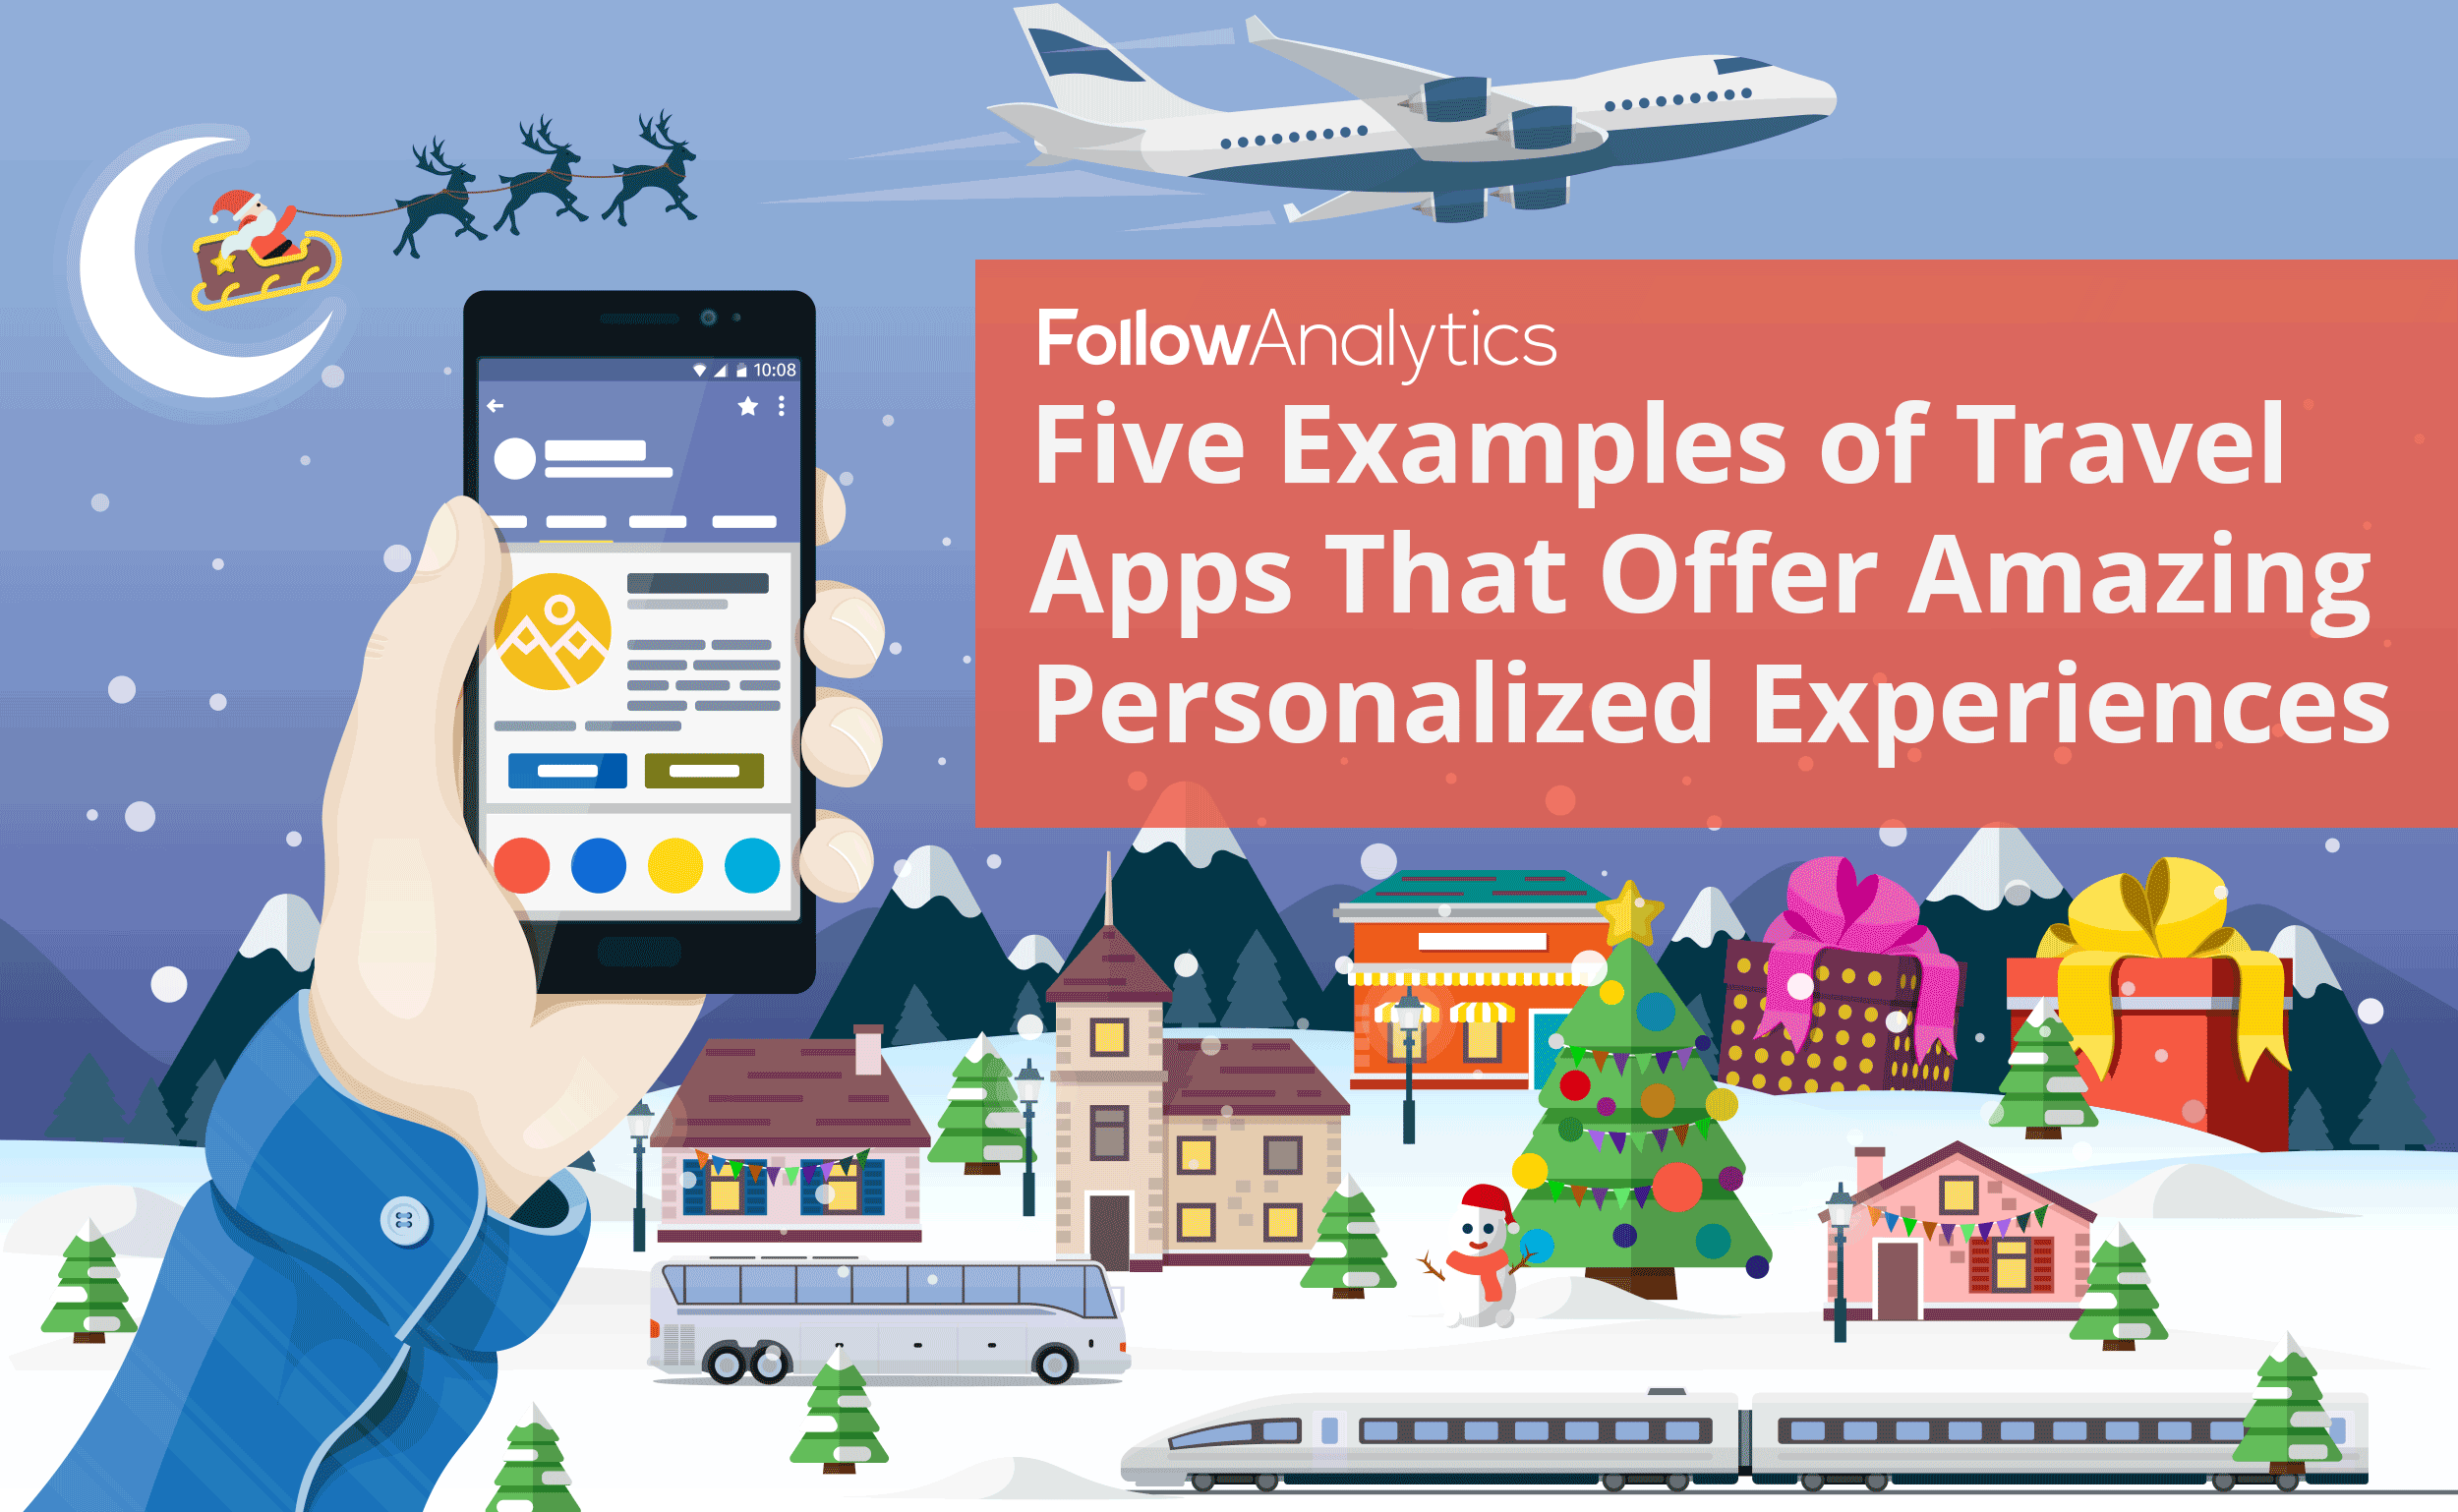 Five Examples of Travel Apps With Amazing Personalized Experiences